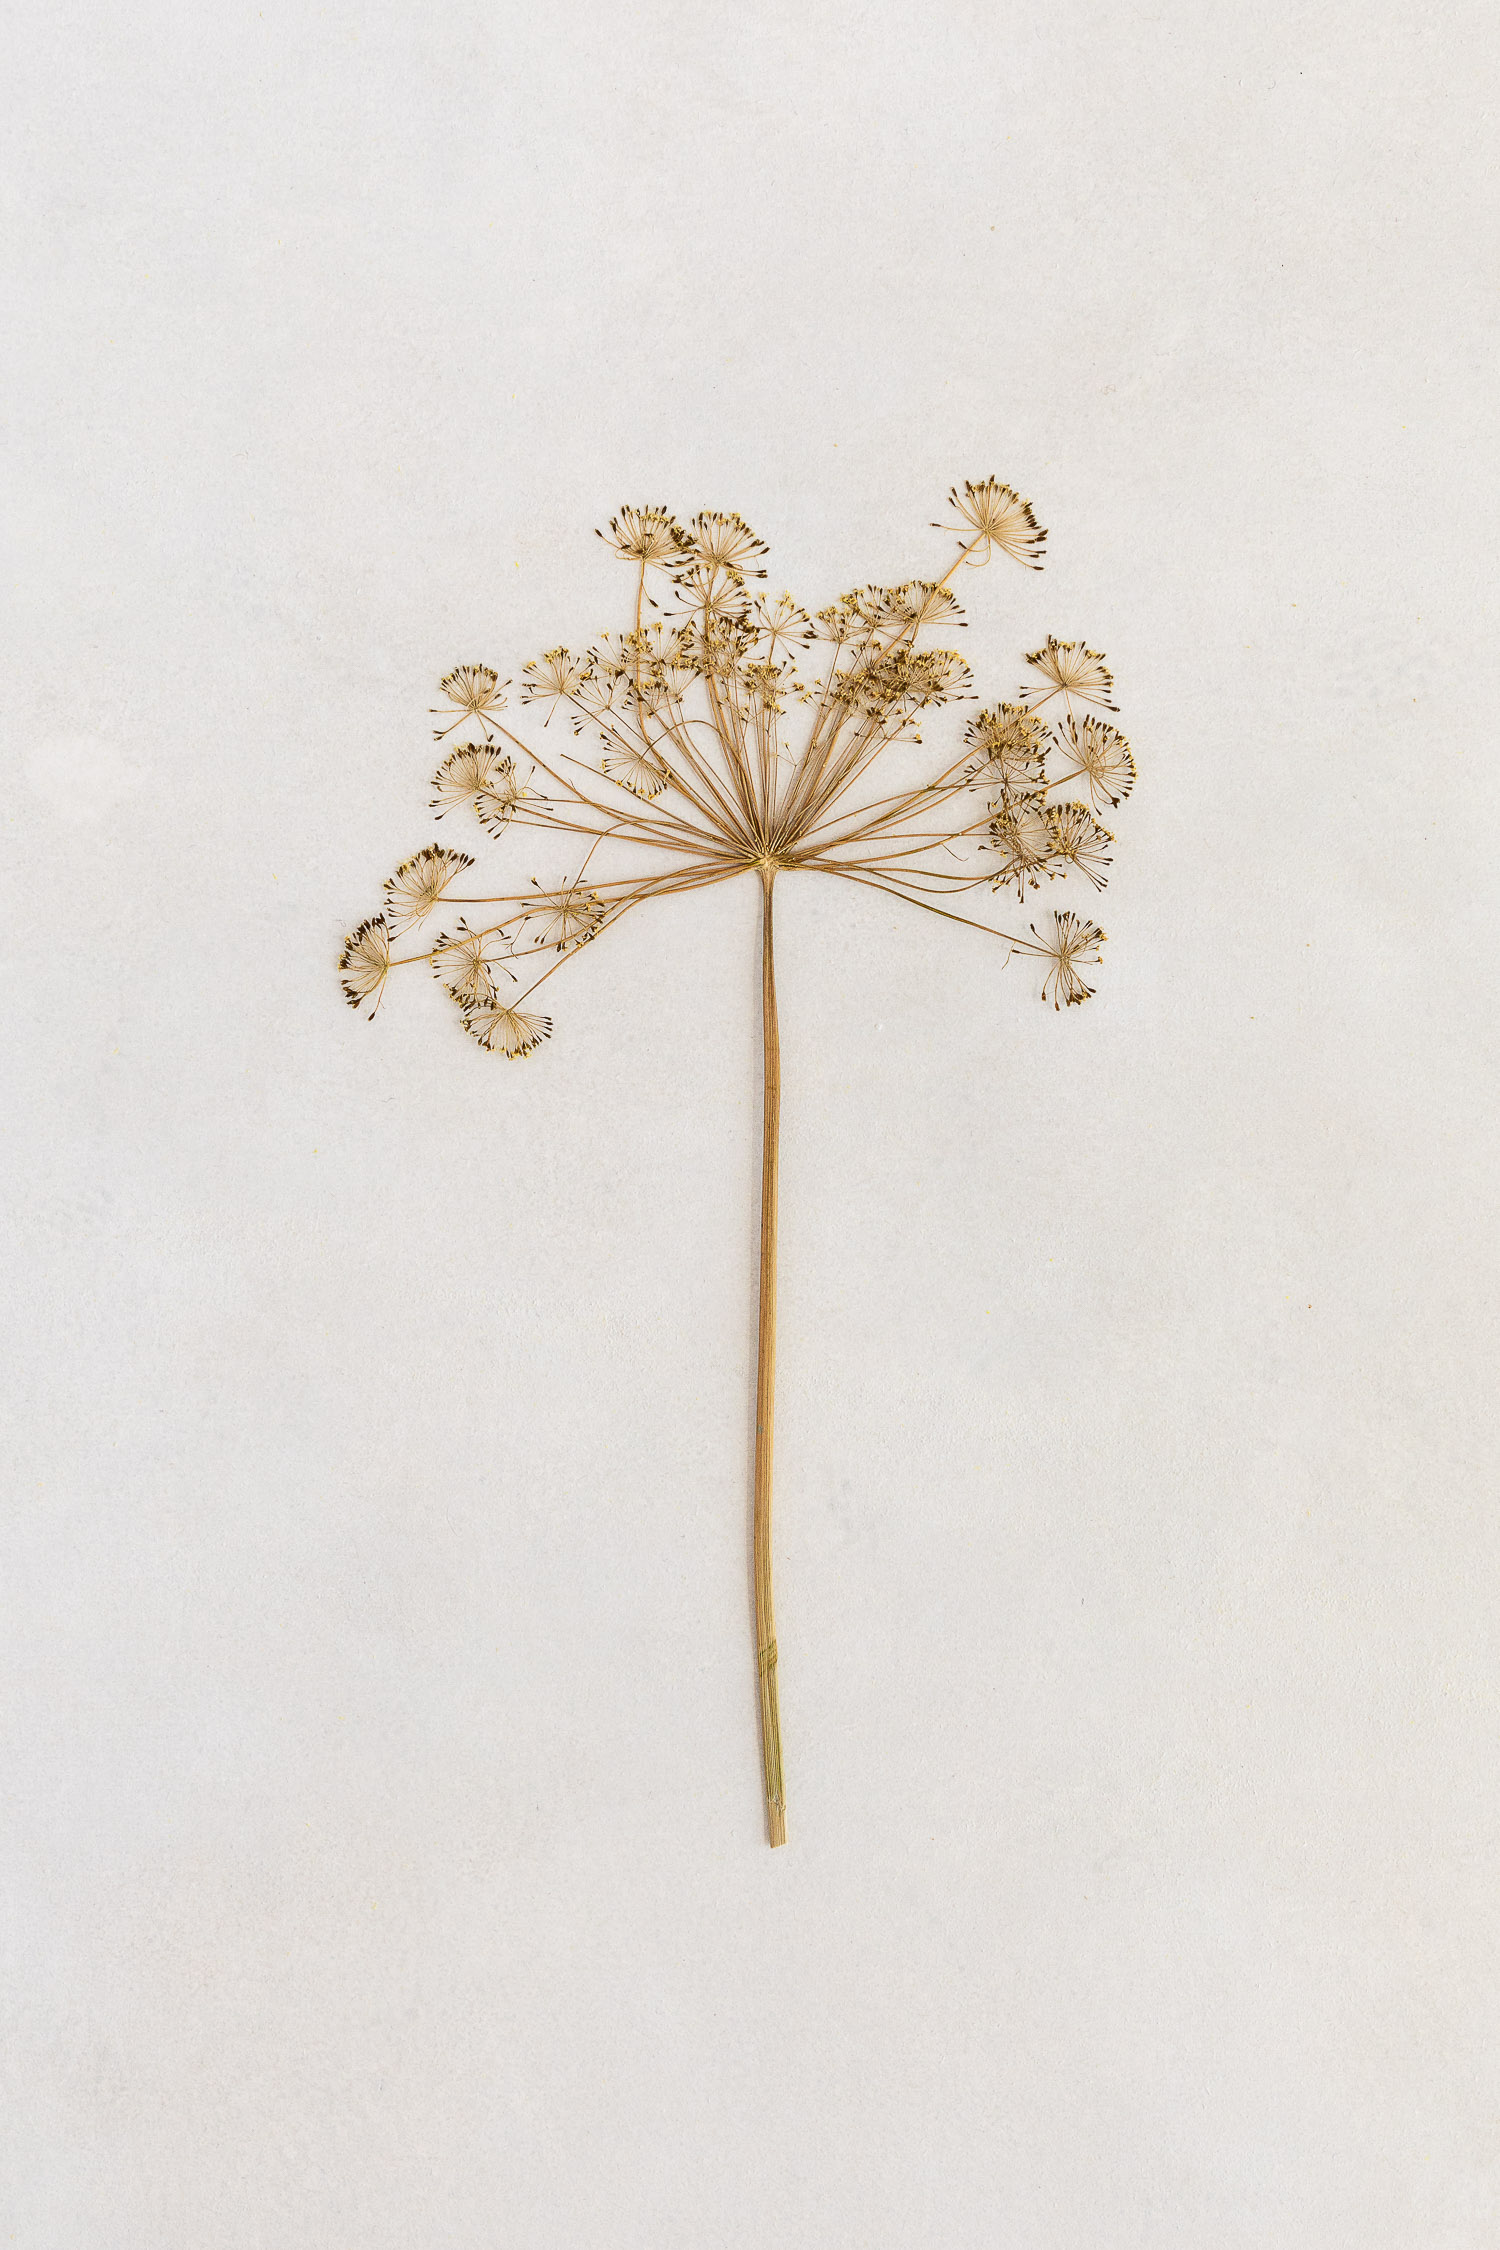 botanical stilllife by marieke verdenius